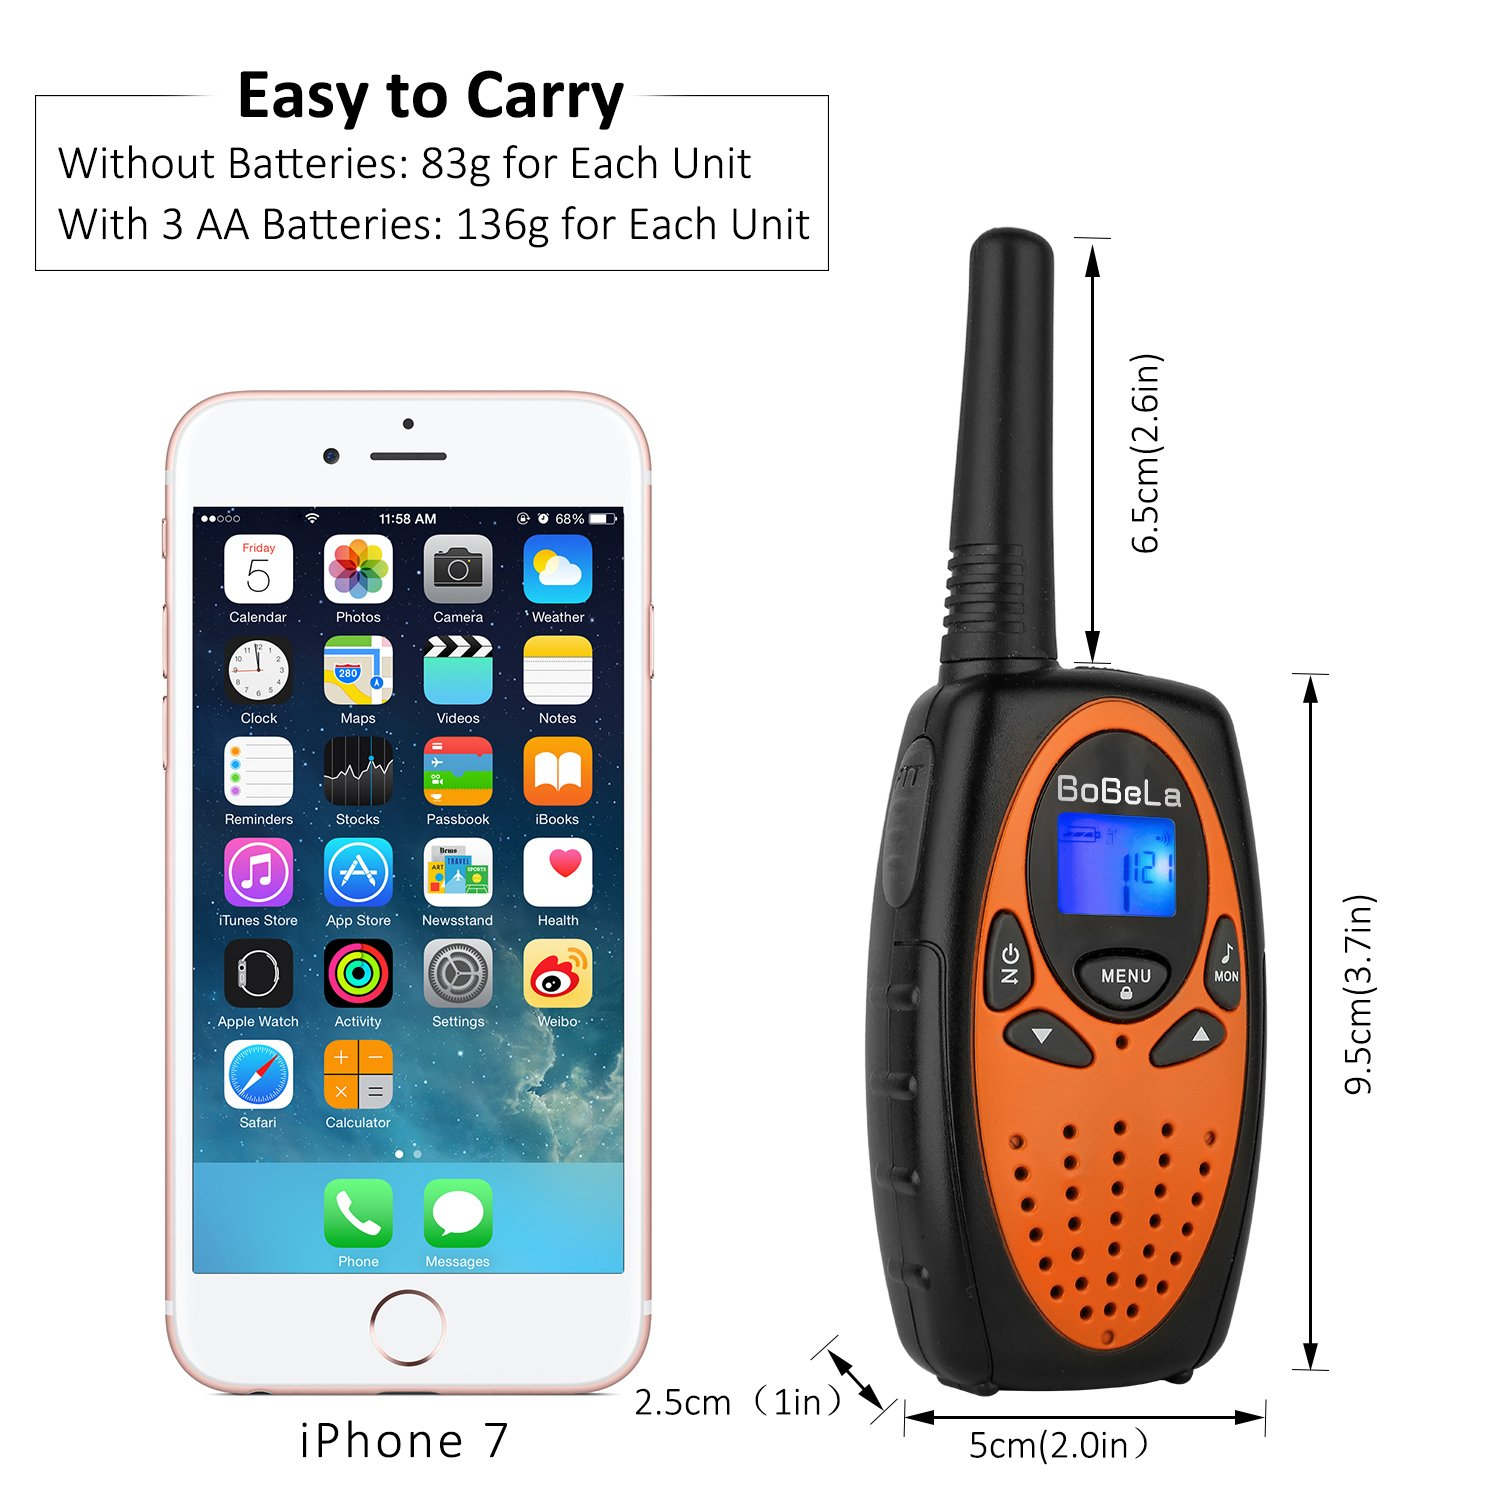 Bobela Camping and Cruise Ship Accessories, Handheld Walky Talky with Belt Clip for Adults,Easy to Use Walkie Talkies for Family Travel Trip(M880 Orange,2 Pack) by Bobela (Image #4)